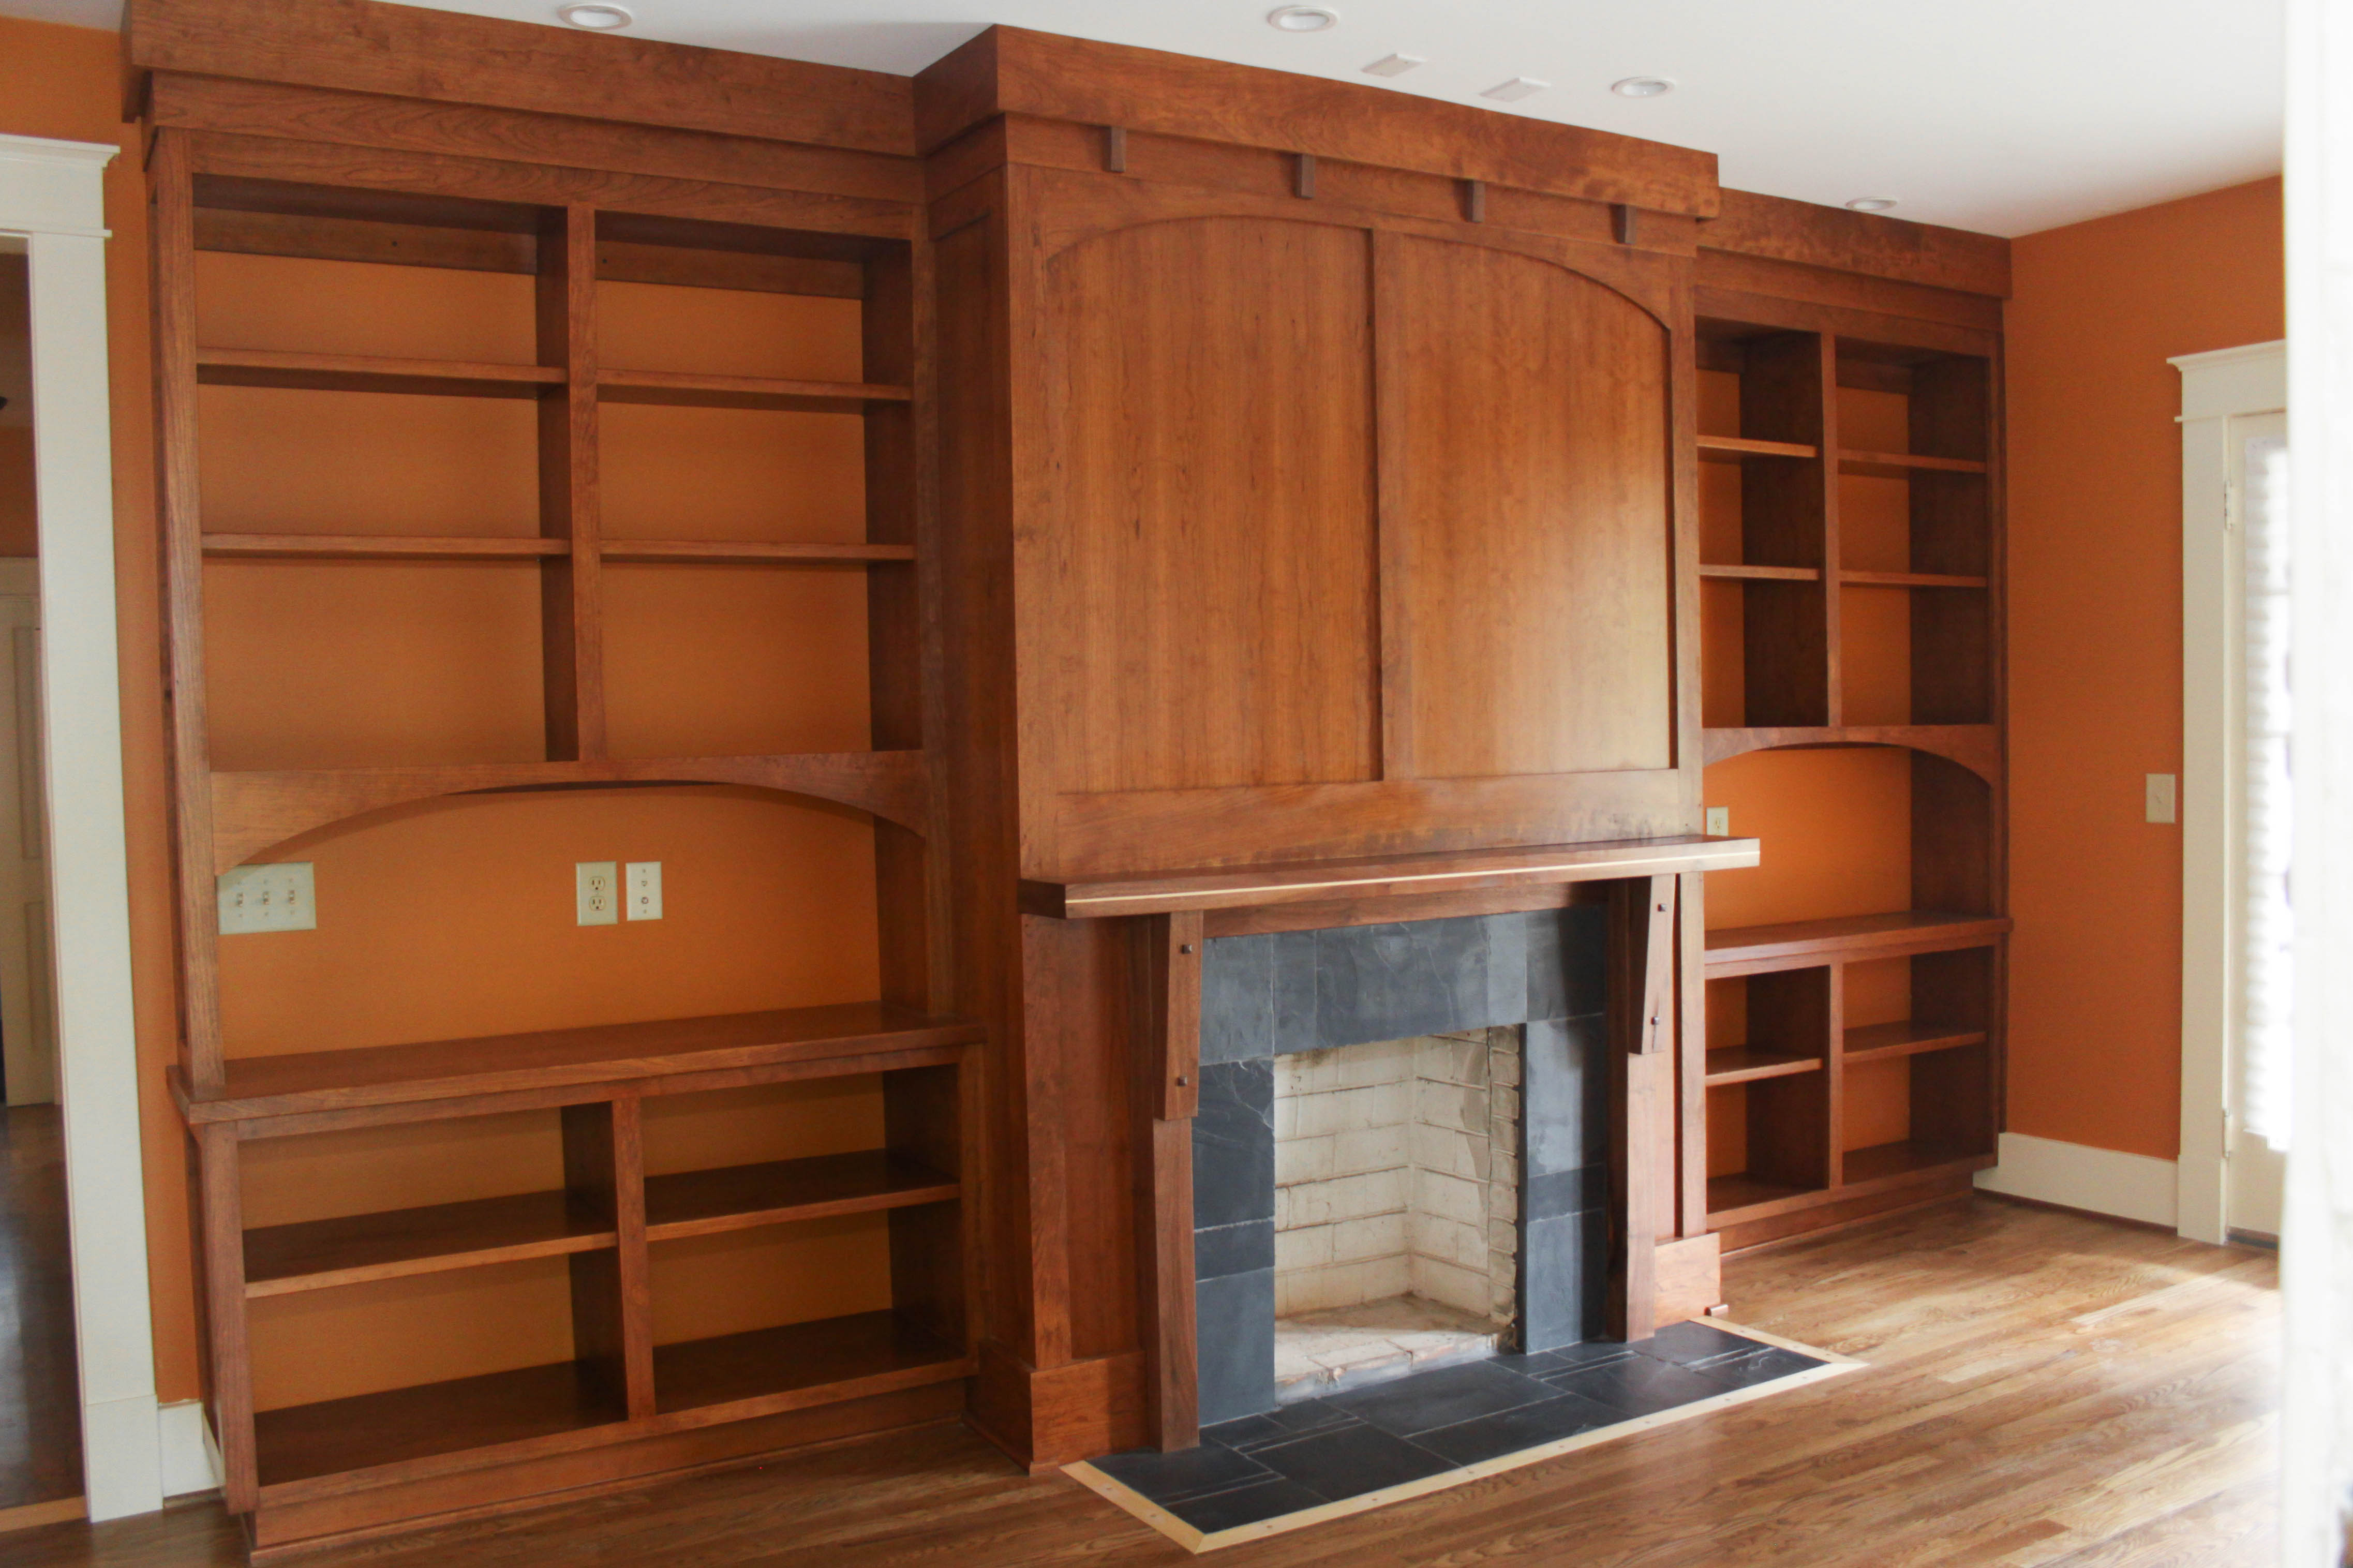 1930 s arts and crafts house shelves rh eastnashvillecabinets com arts and crafts shelving arts and crafts shelving